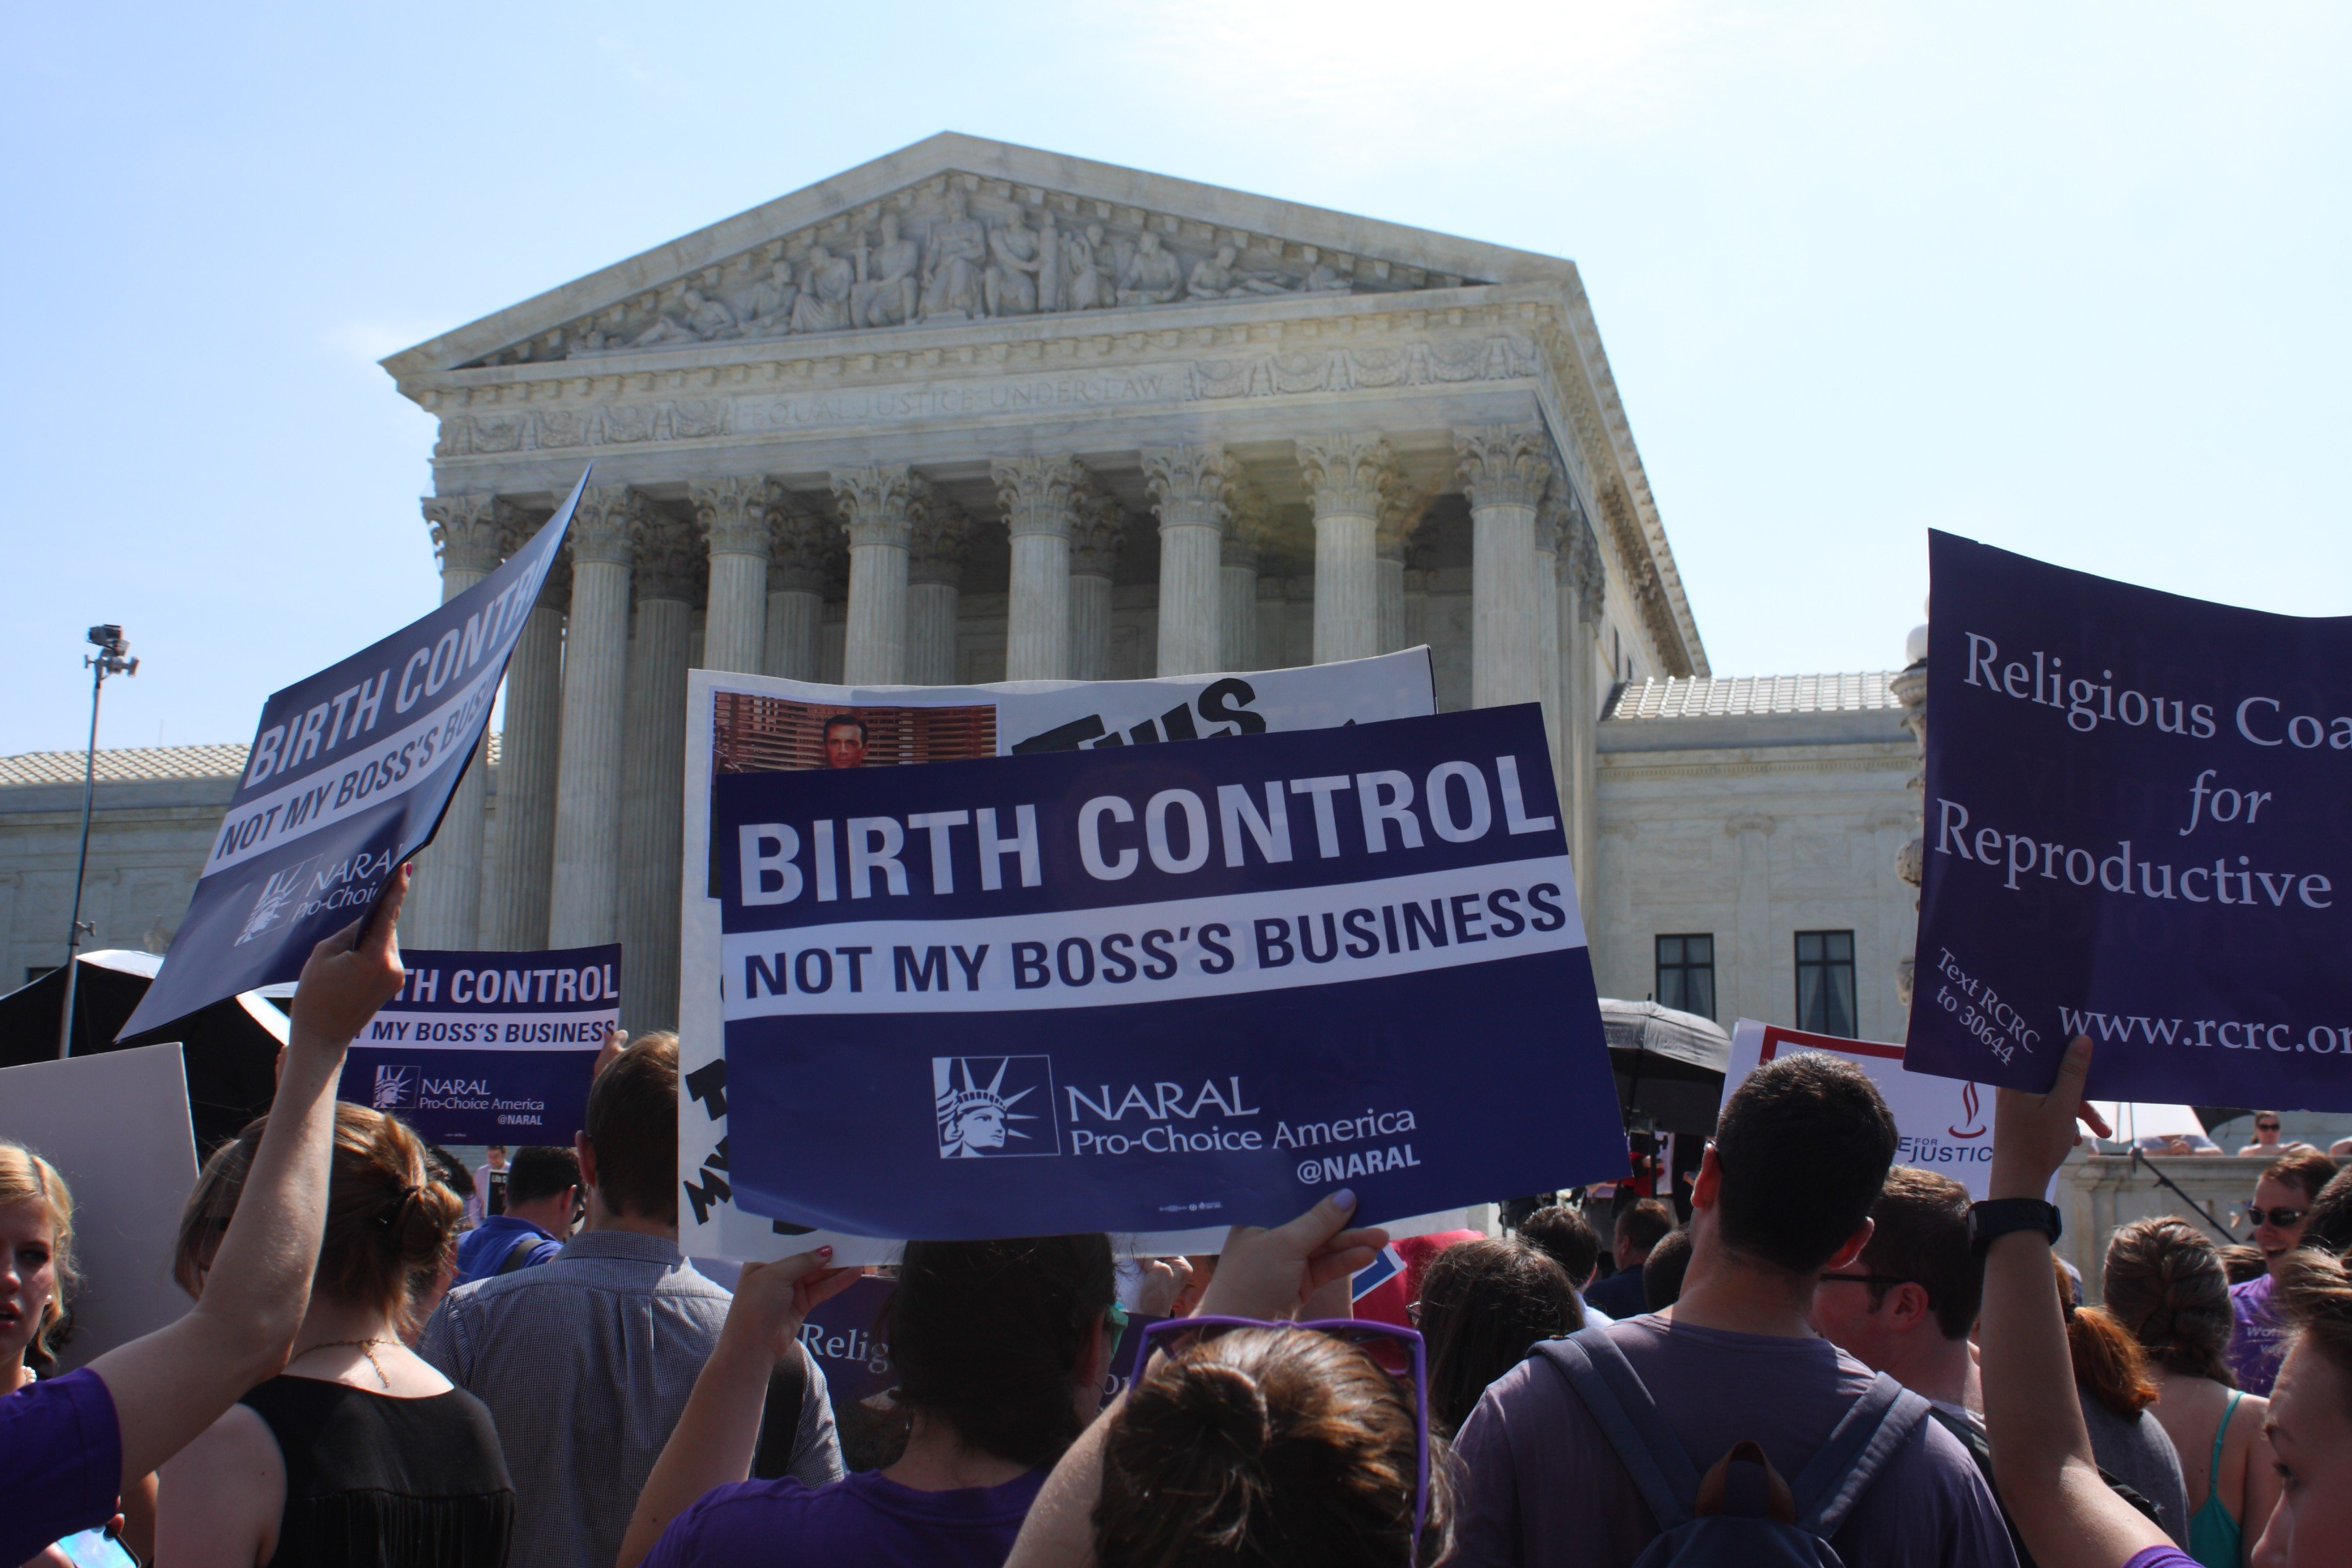 People with signs outside the Supreme Court building await a ruling in Burwell v. Hobby Lobby on June 30, 2014 in Washington.